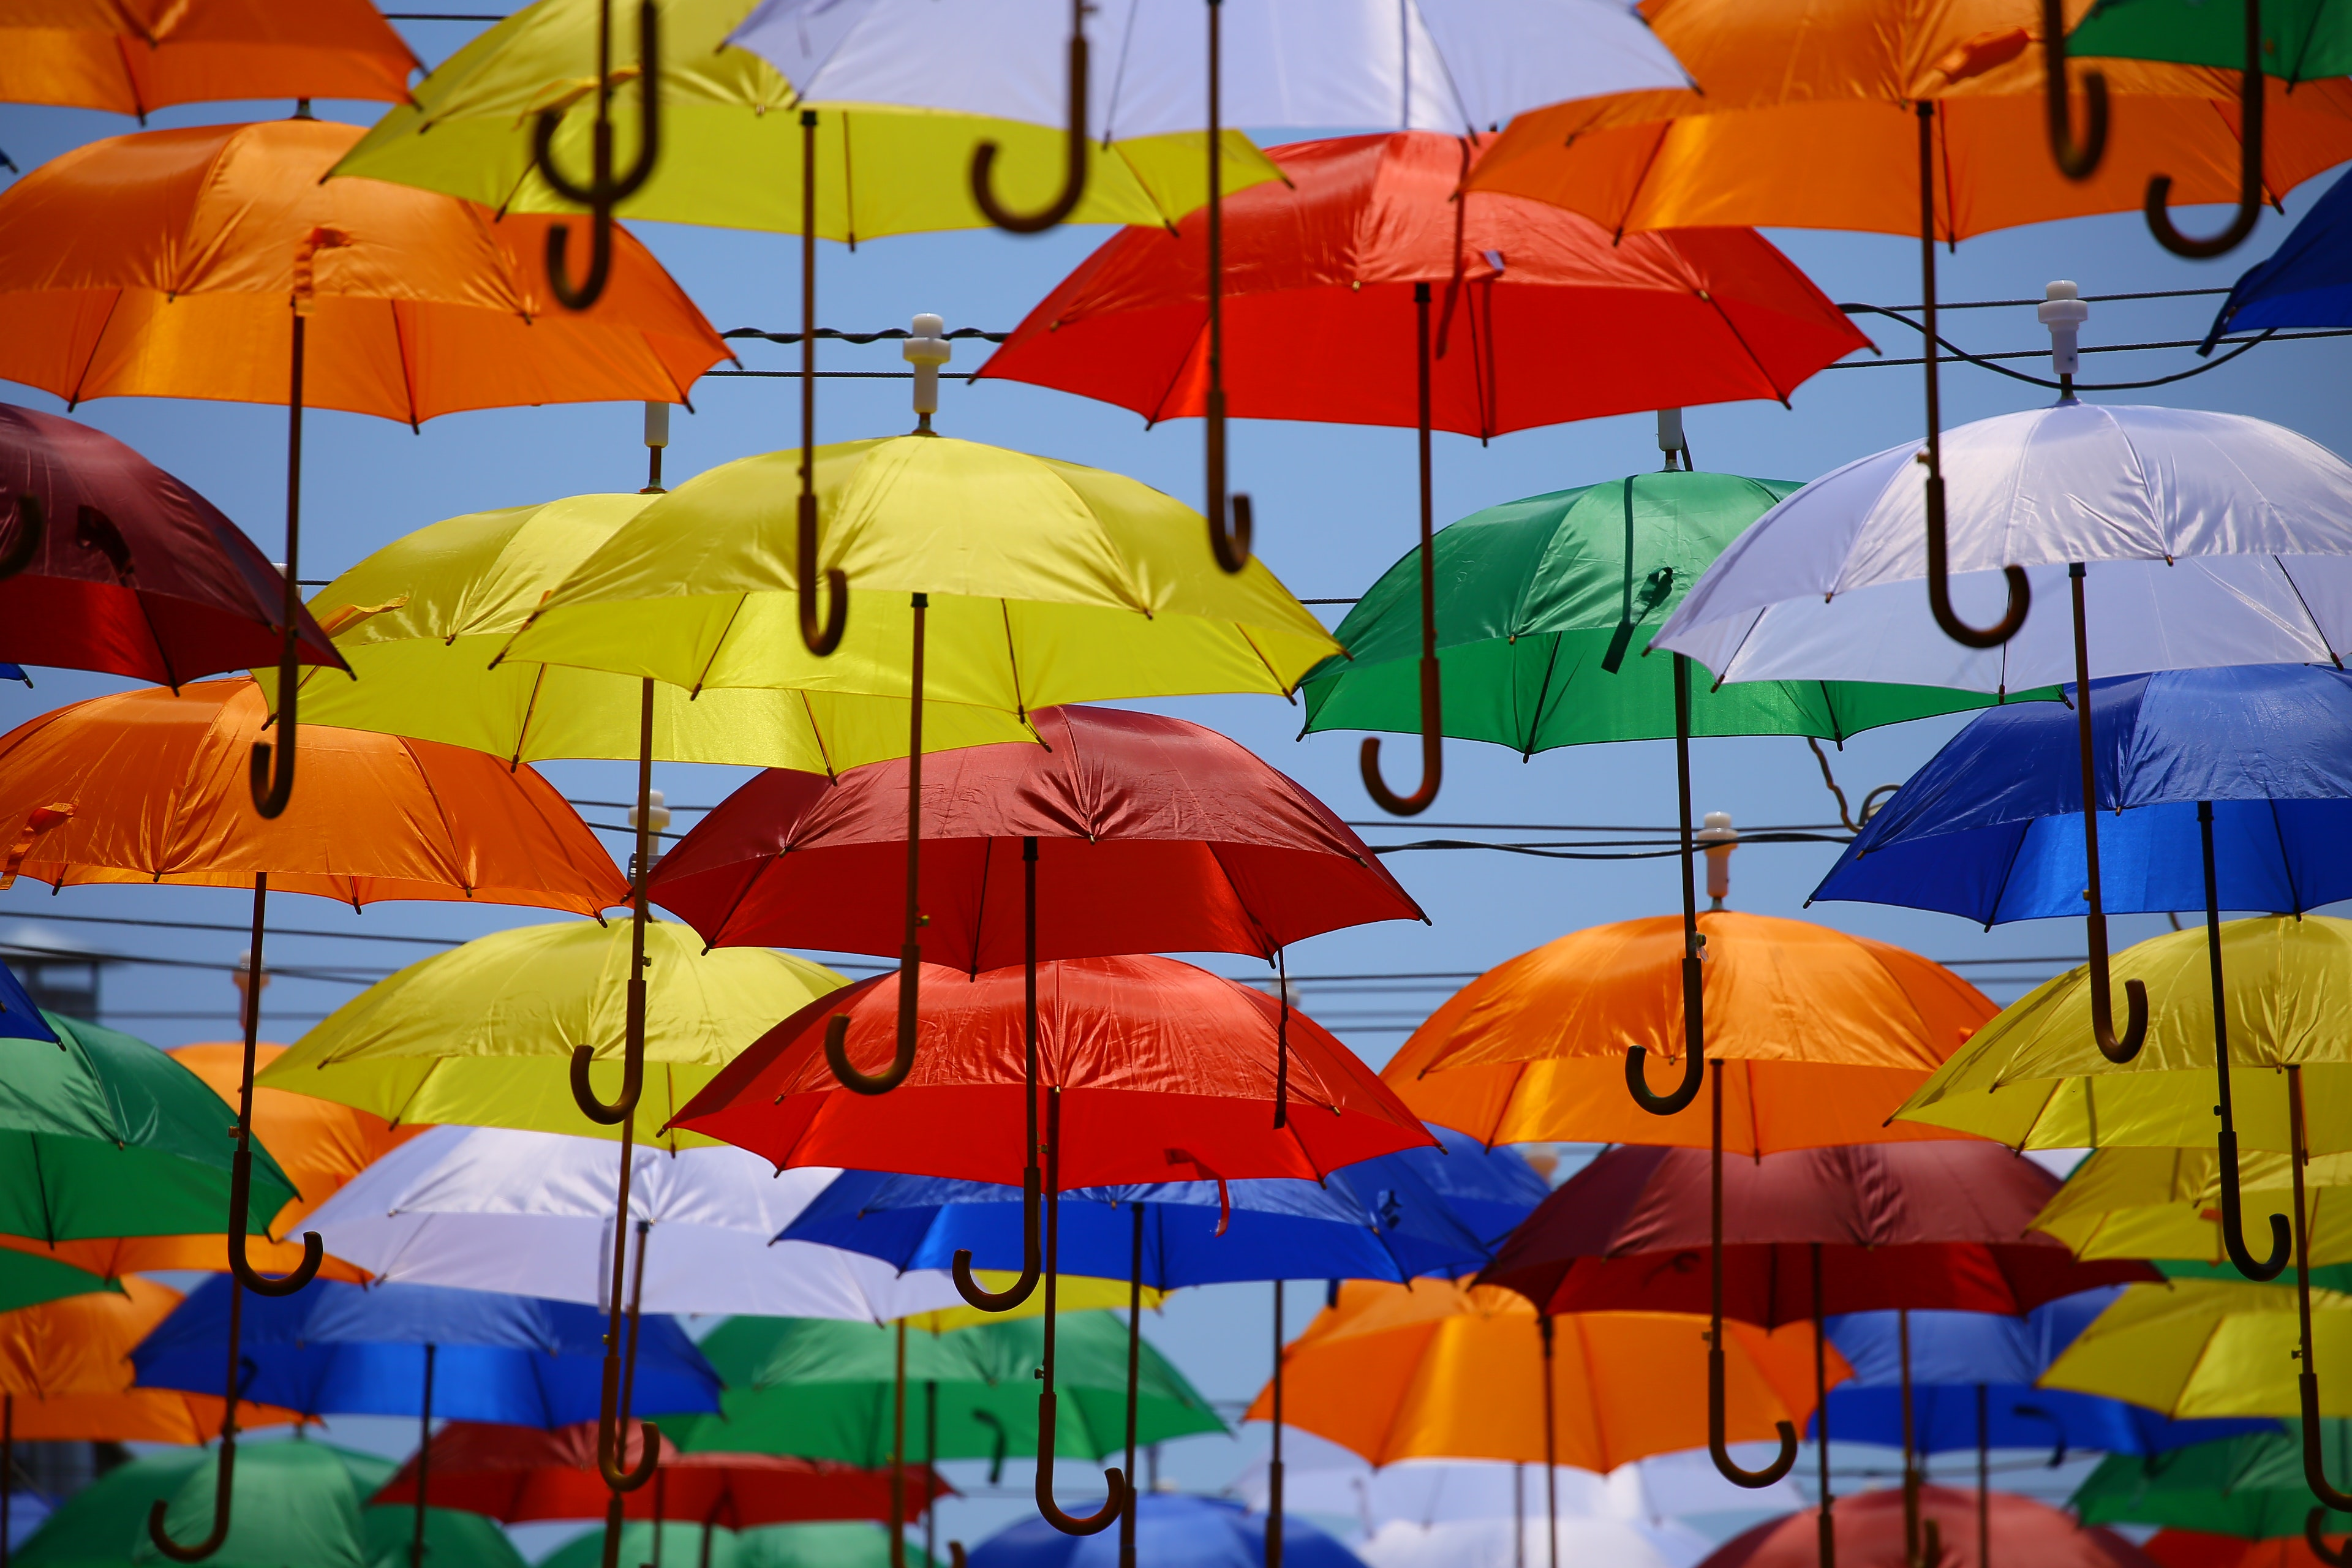 Free stock photo of colorful, colourful, creative for Colorful Umbrella Photography  75tgx